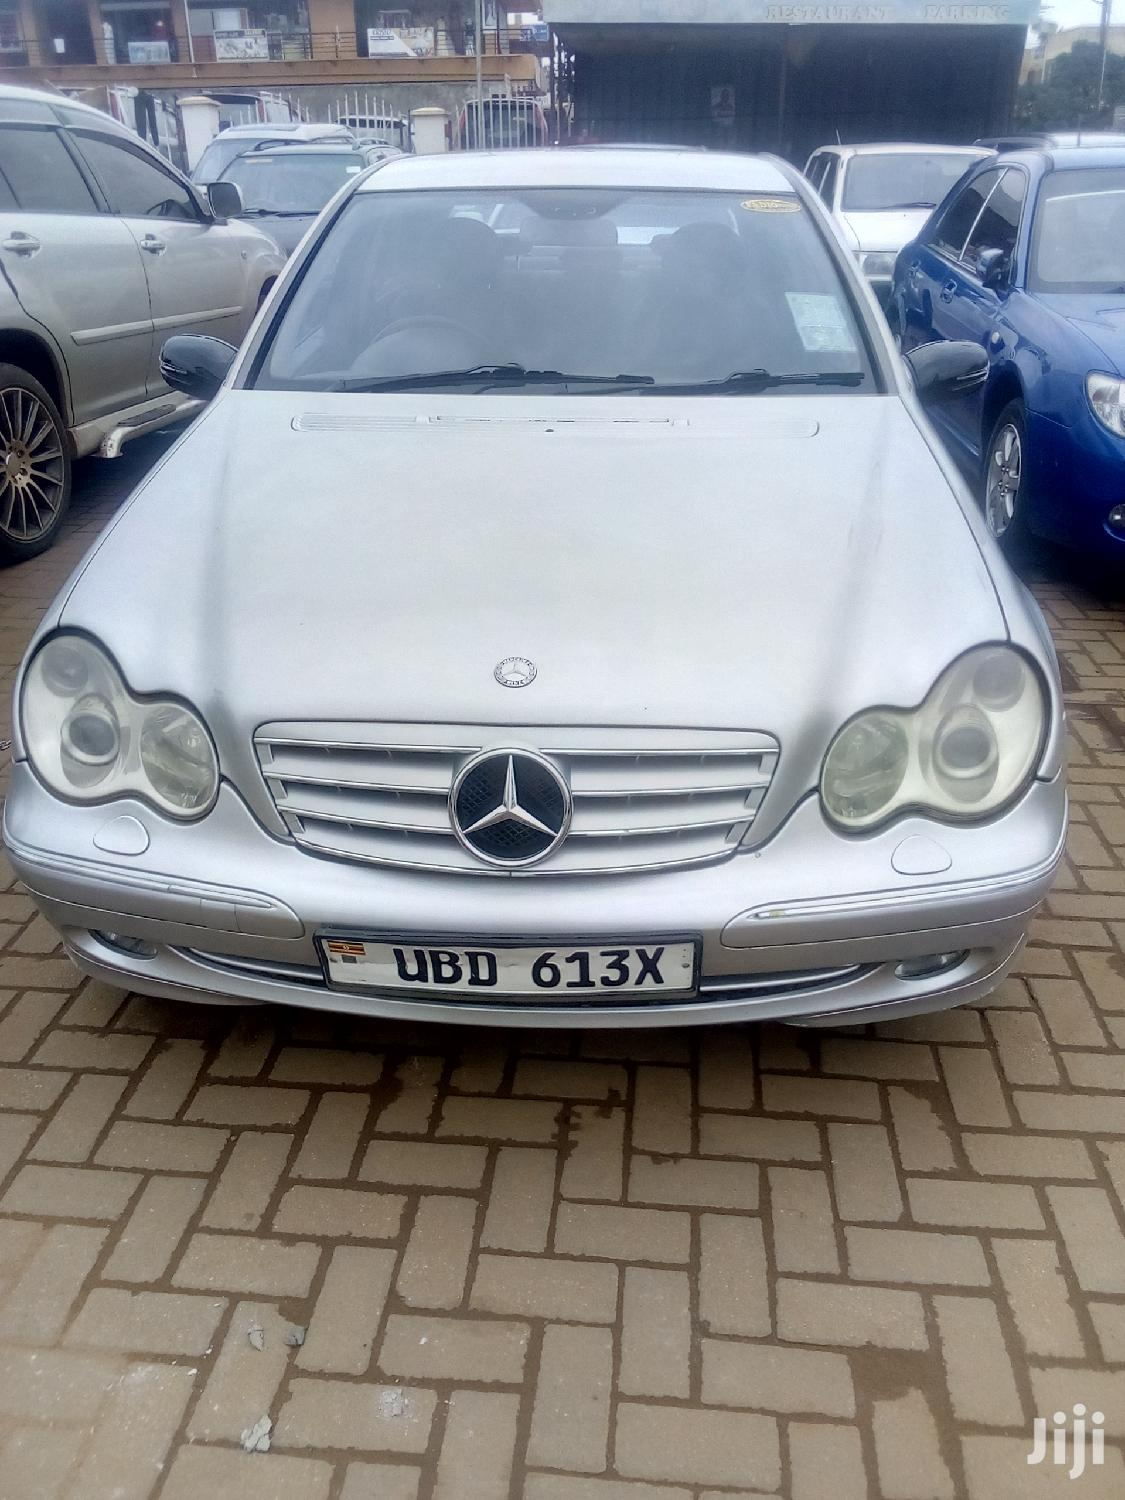 Mercedes-Benz C200 2004 Silver | Cars for sale in Kampala, Central Region, Uganda